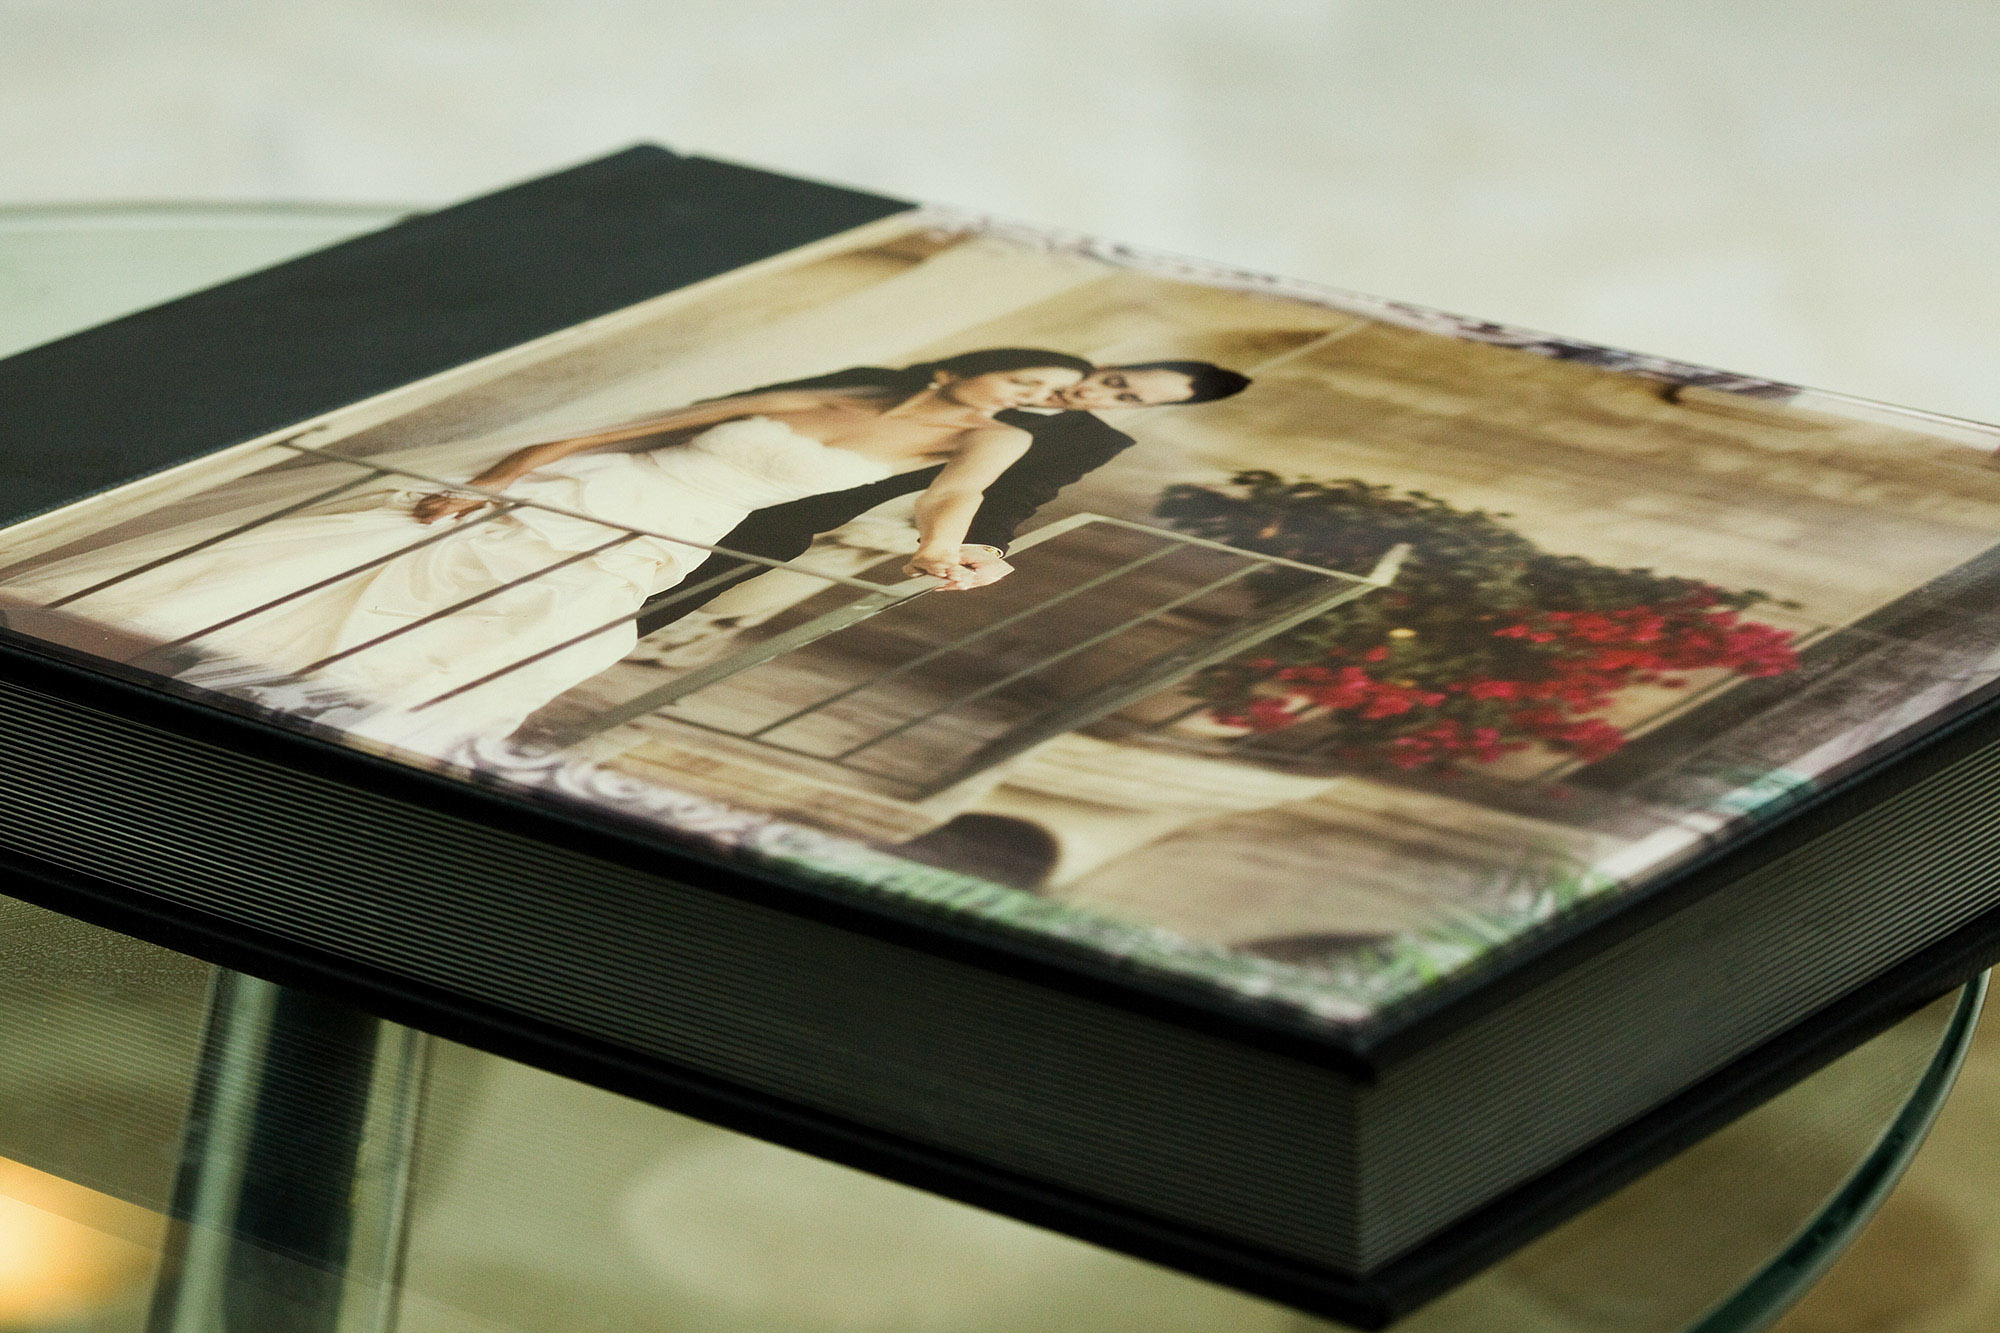 is different between Flush Mount Wedding album and Coffee table